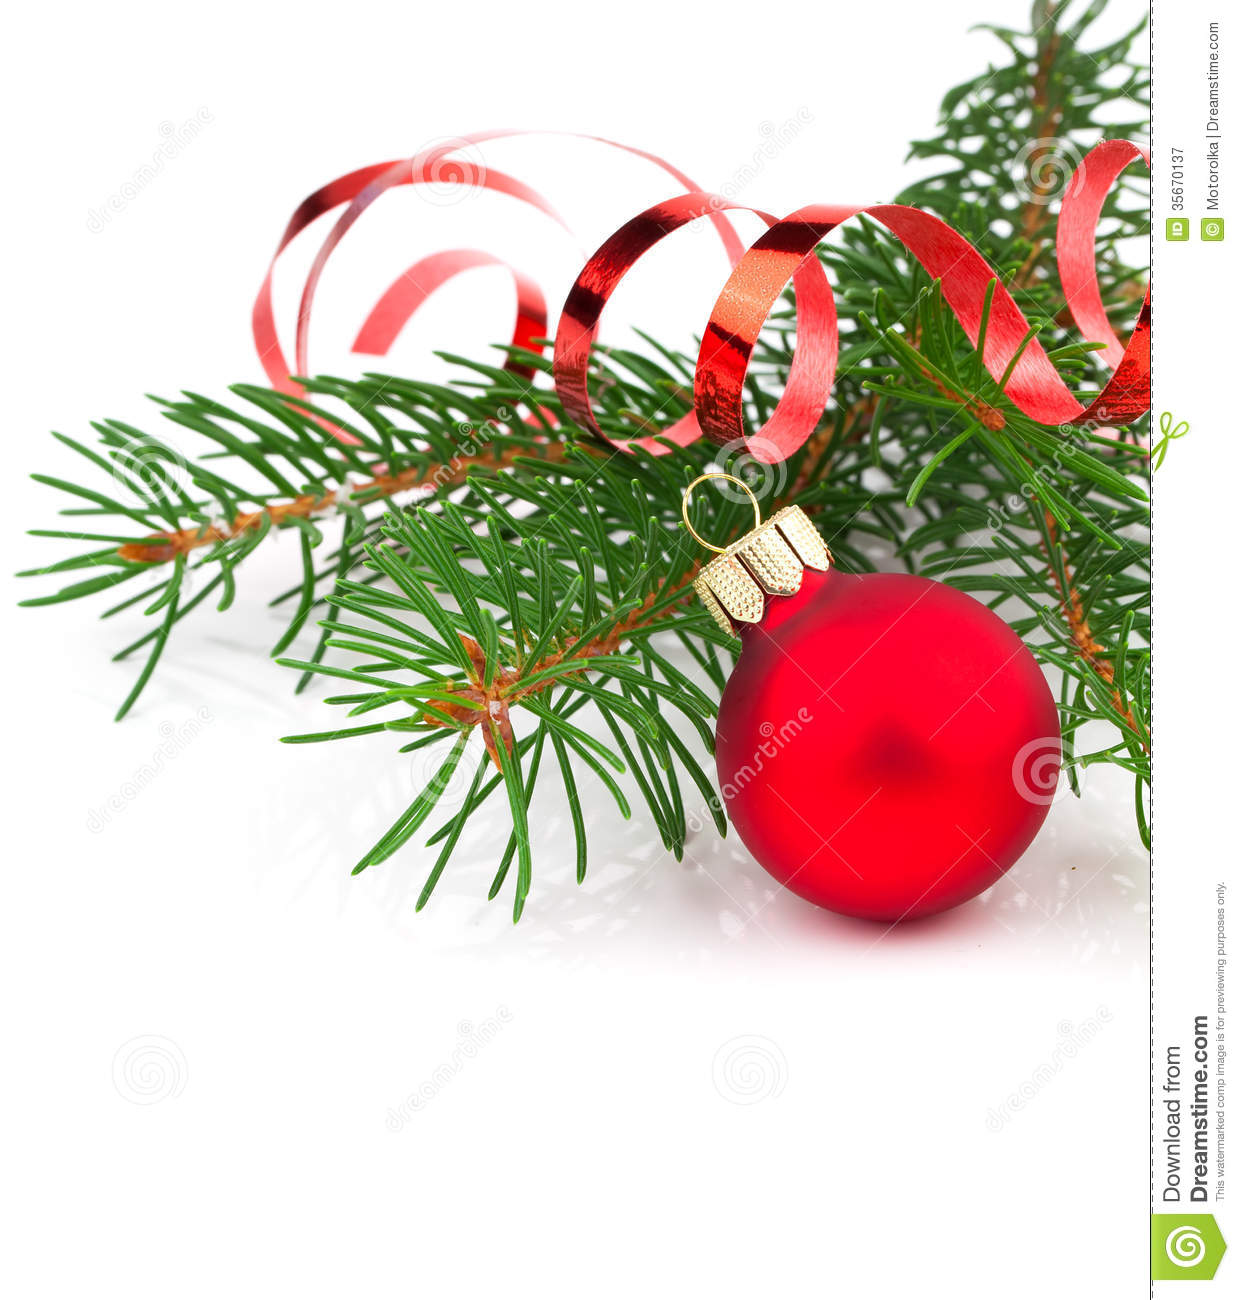 #BF0C20 Christmas Decoration Royalty Free Stock Photography  6361 décoration noel commerce 1240x1300 px @ aertt.com